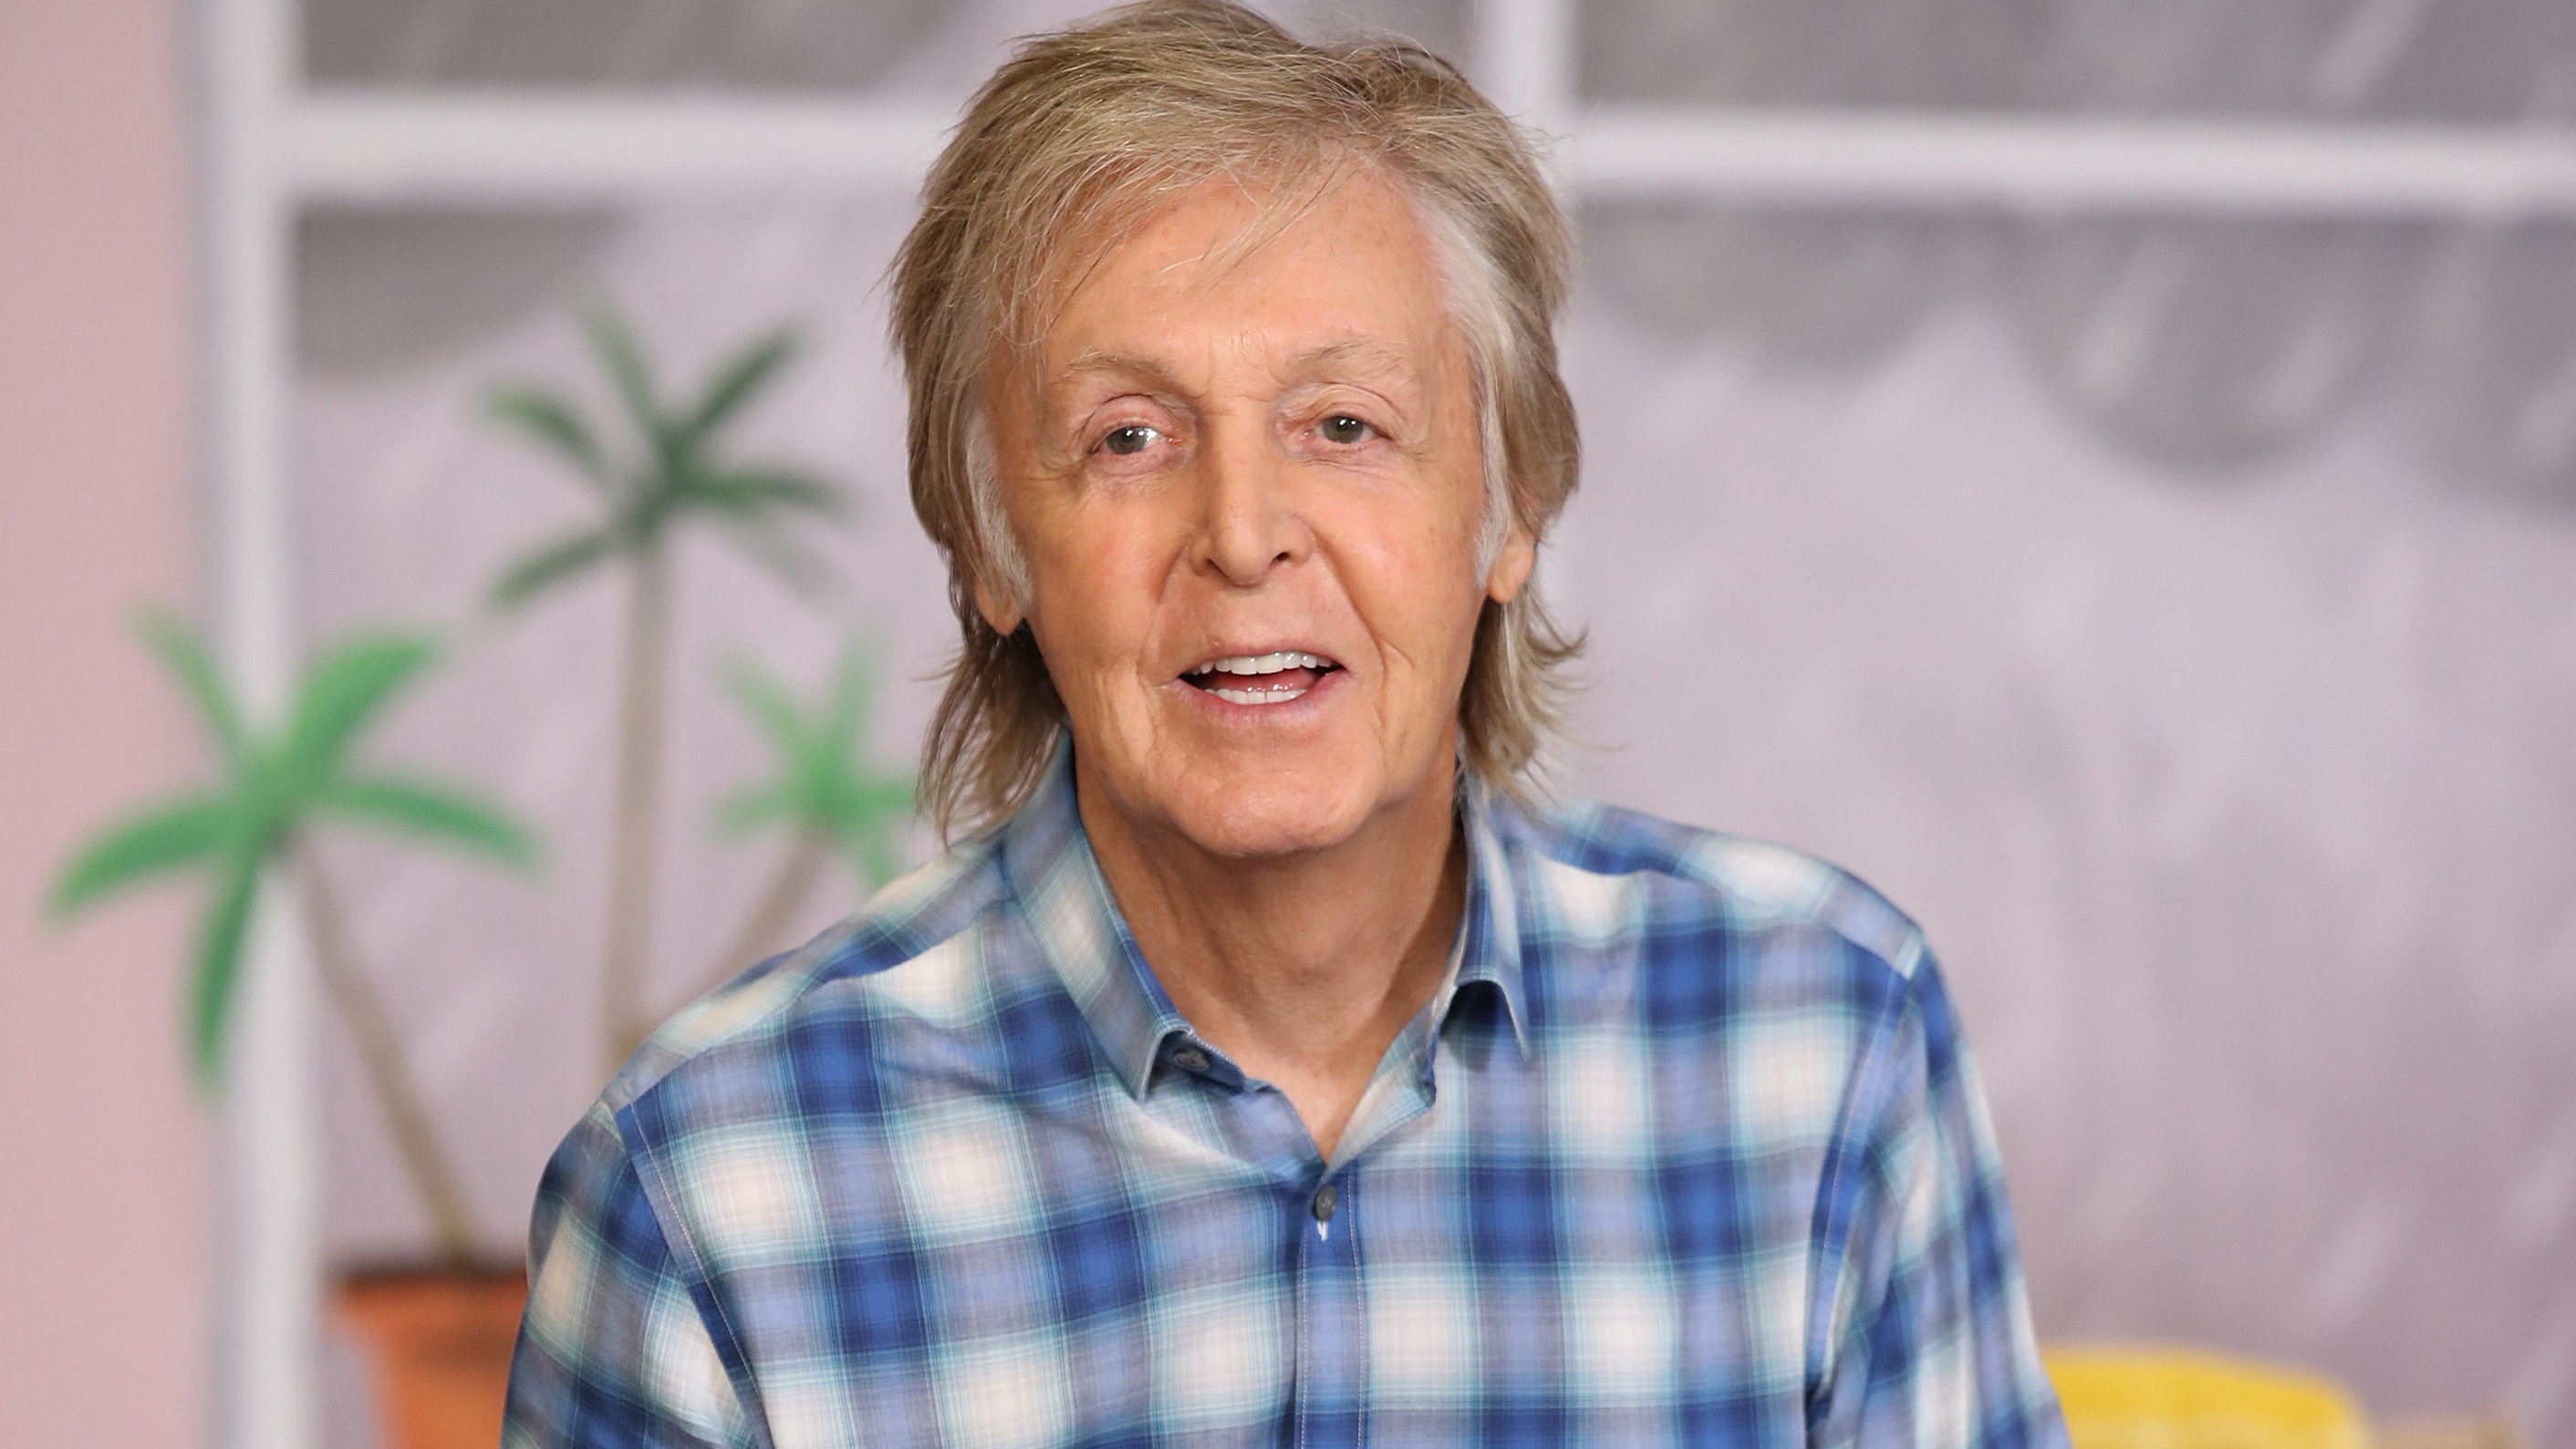 Paul McCartney slams The Rolling Stones, calls them a 'blues cover band'